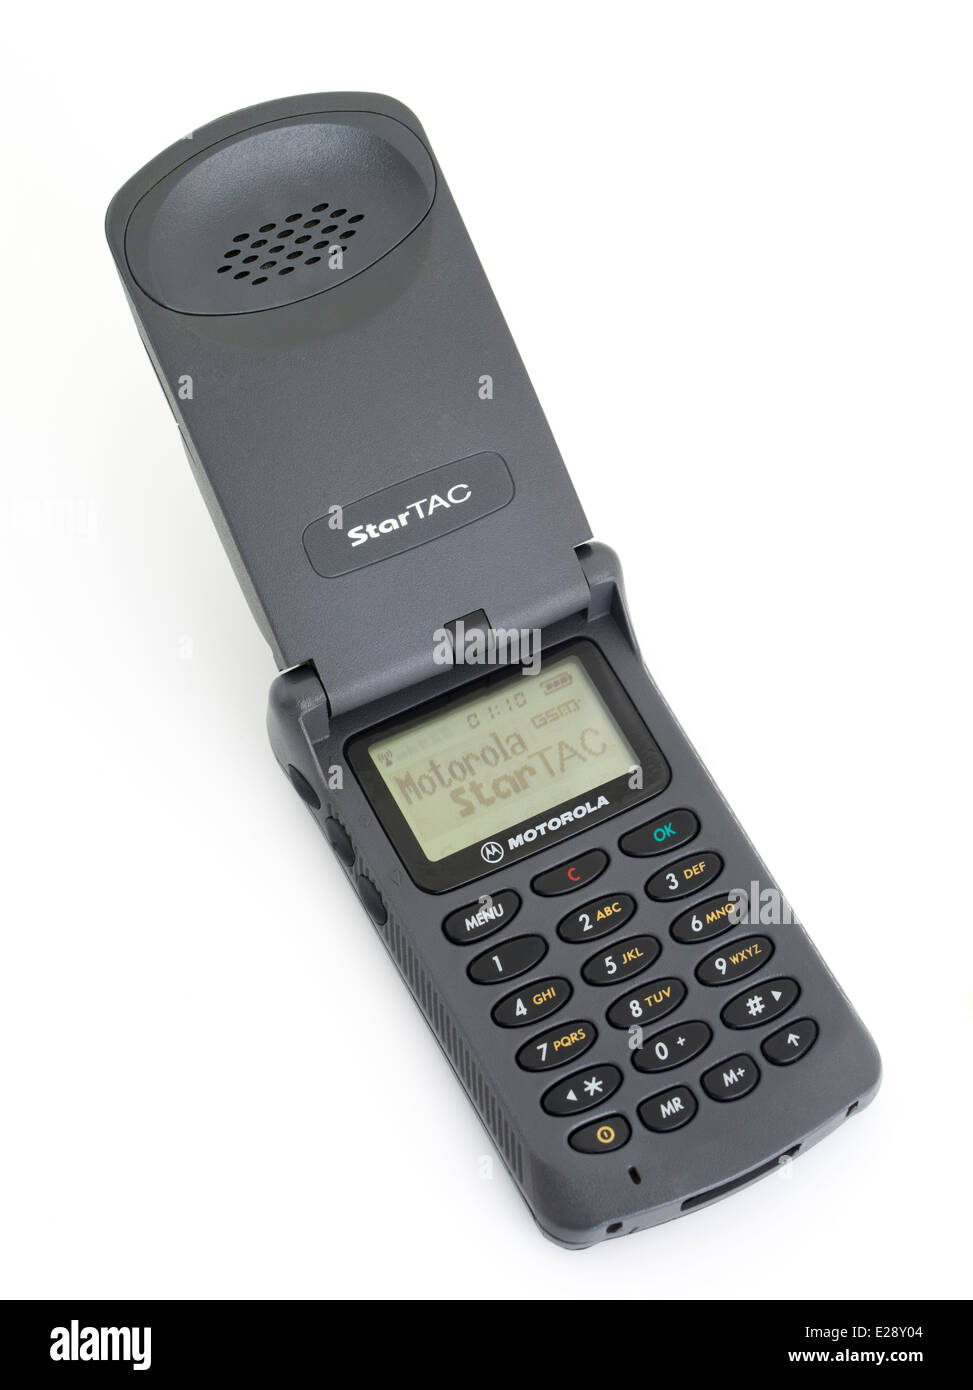 Motorola StarTAC star tac 85. First Clamshell / flip mobile phone released 1996 - Stock Image